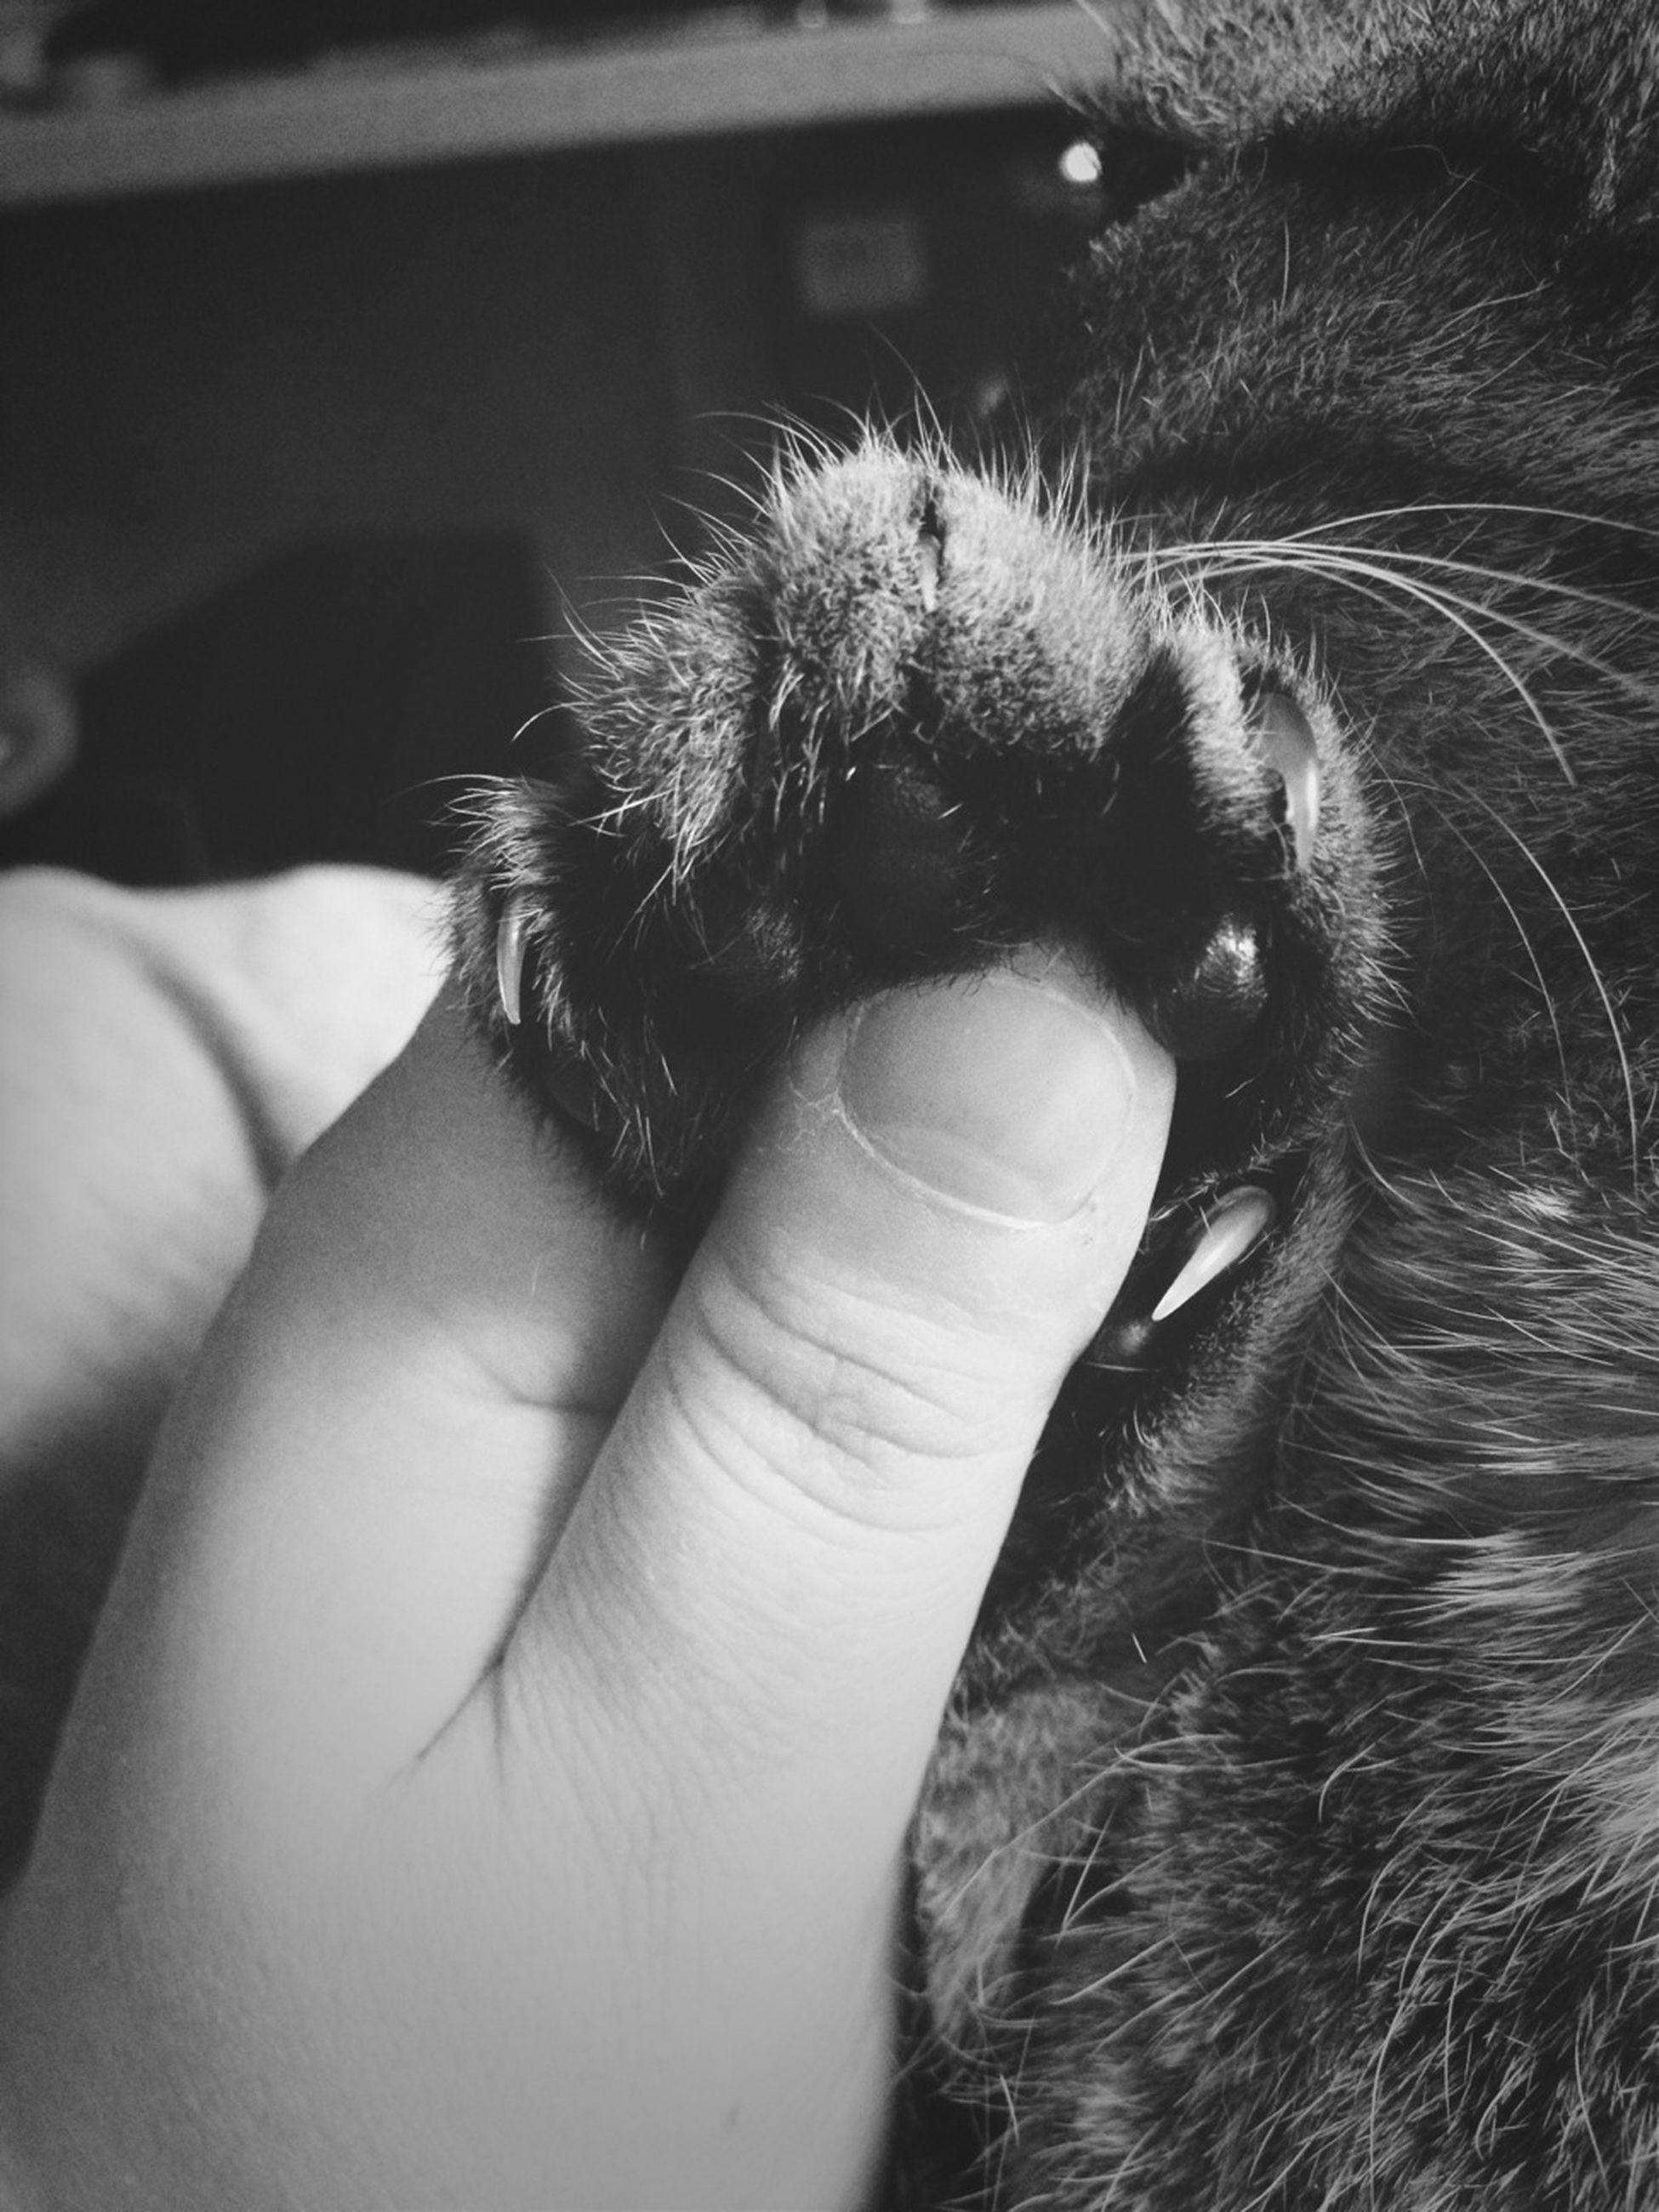 person, one animal, animal themes, part of, cropped, unrecognizable person, holding, human finger, close-up, pets, domestic cat, domestic animals, focus on foreground, lifestyles, mammal, wildlife